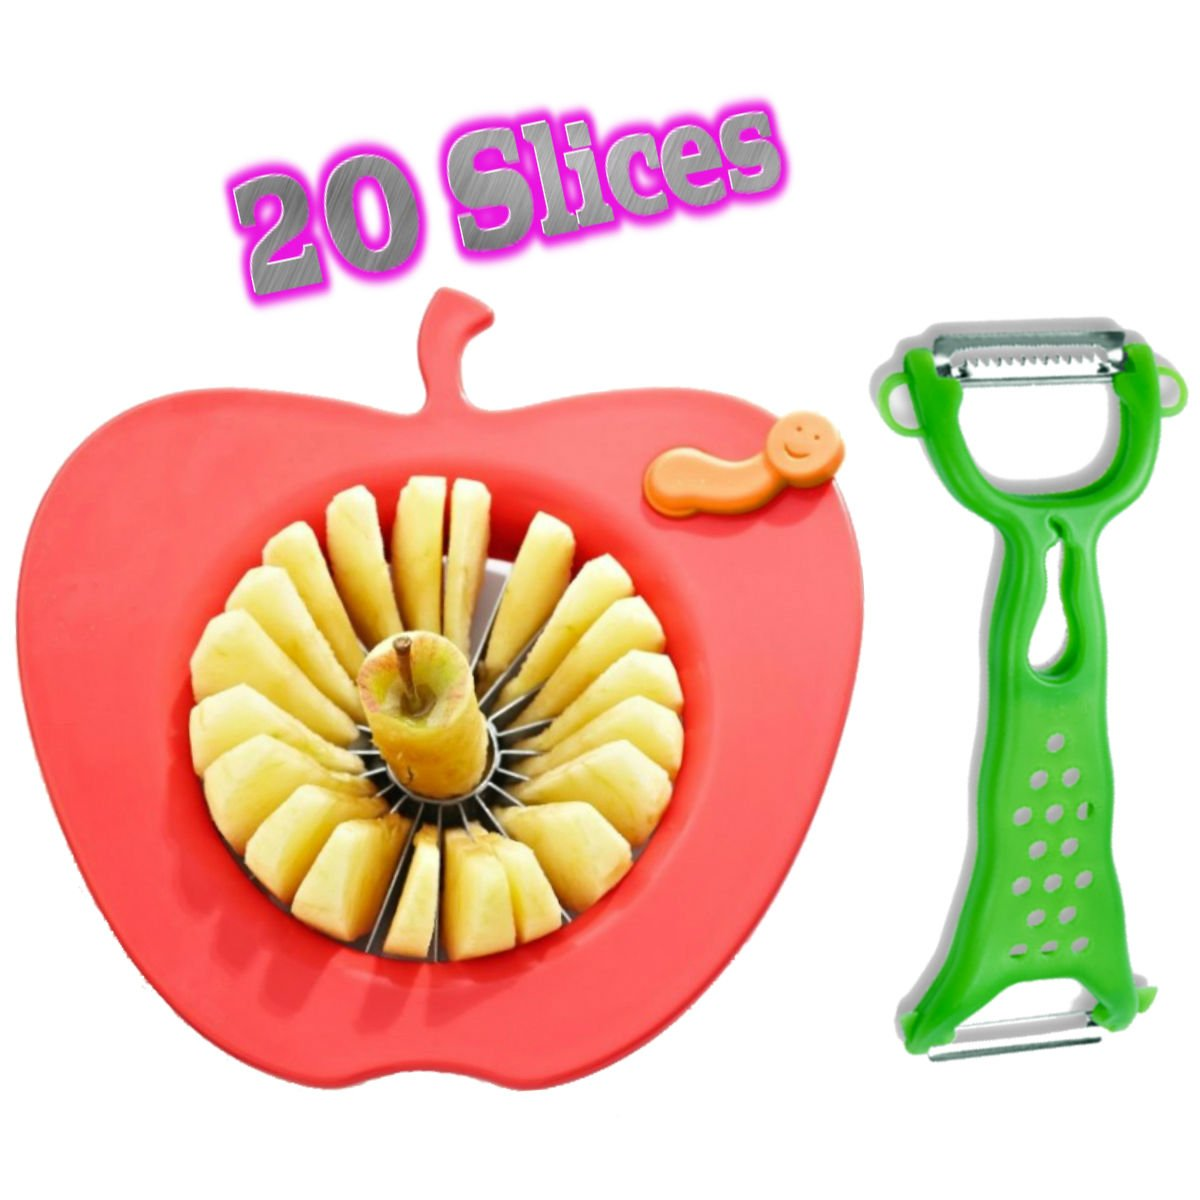 Corer Slicer Peeler and Divider Set Cuts 20 Thin Apple Slices for Kids  Onion Slicer for Vegetables Tomato Potato Slicer with Bonus Julienne Peeler